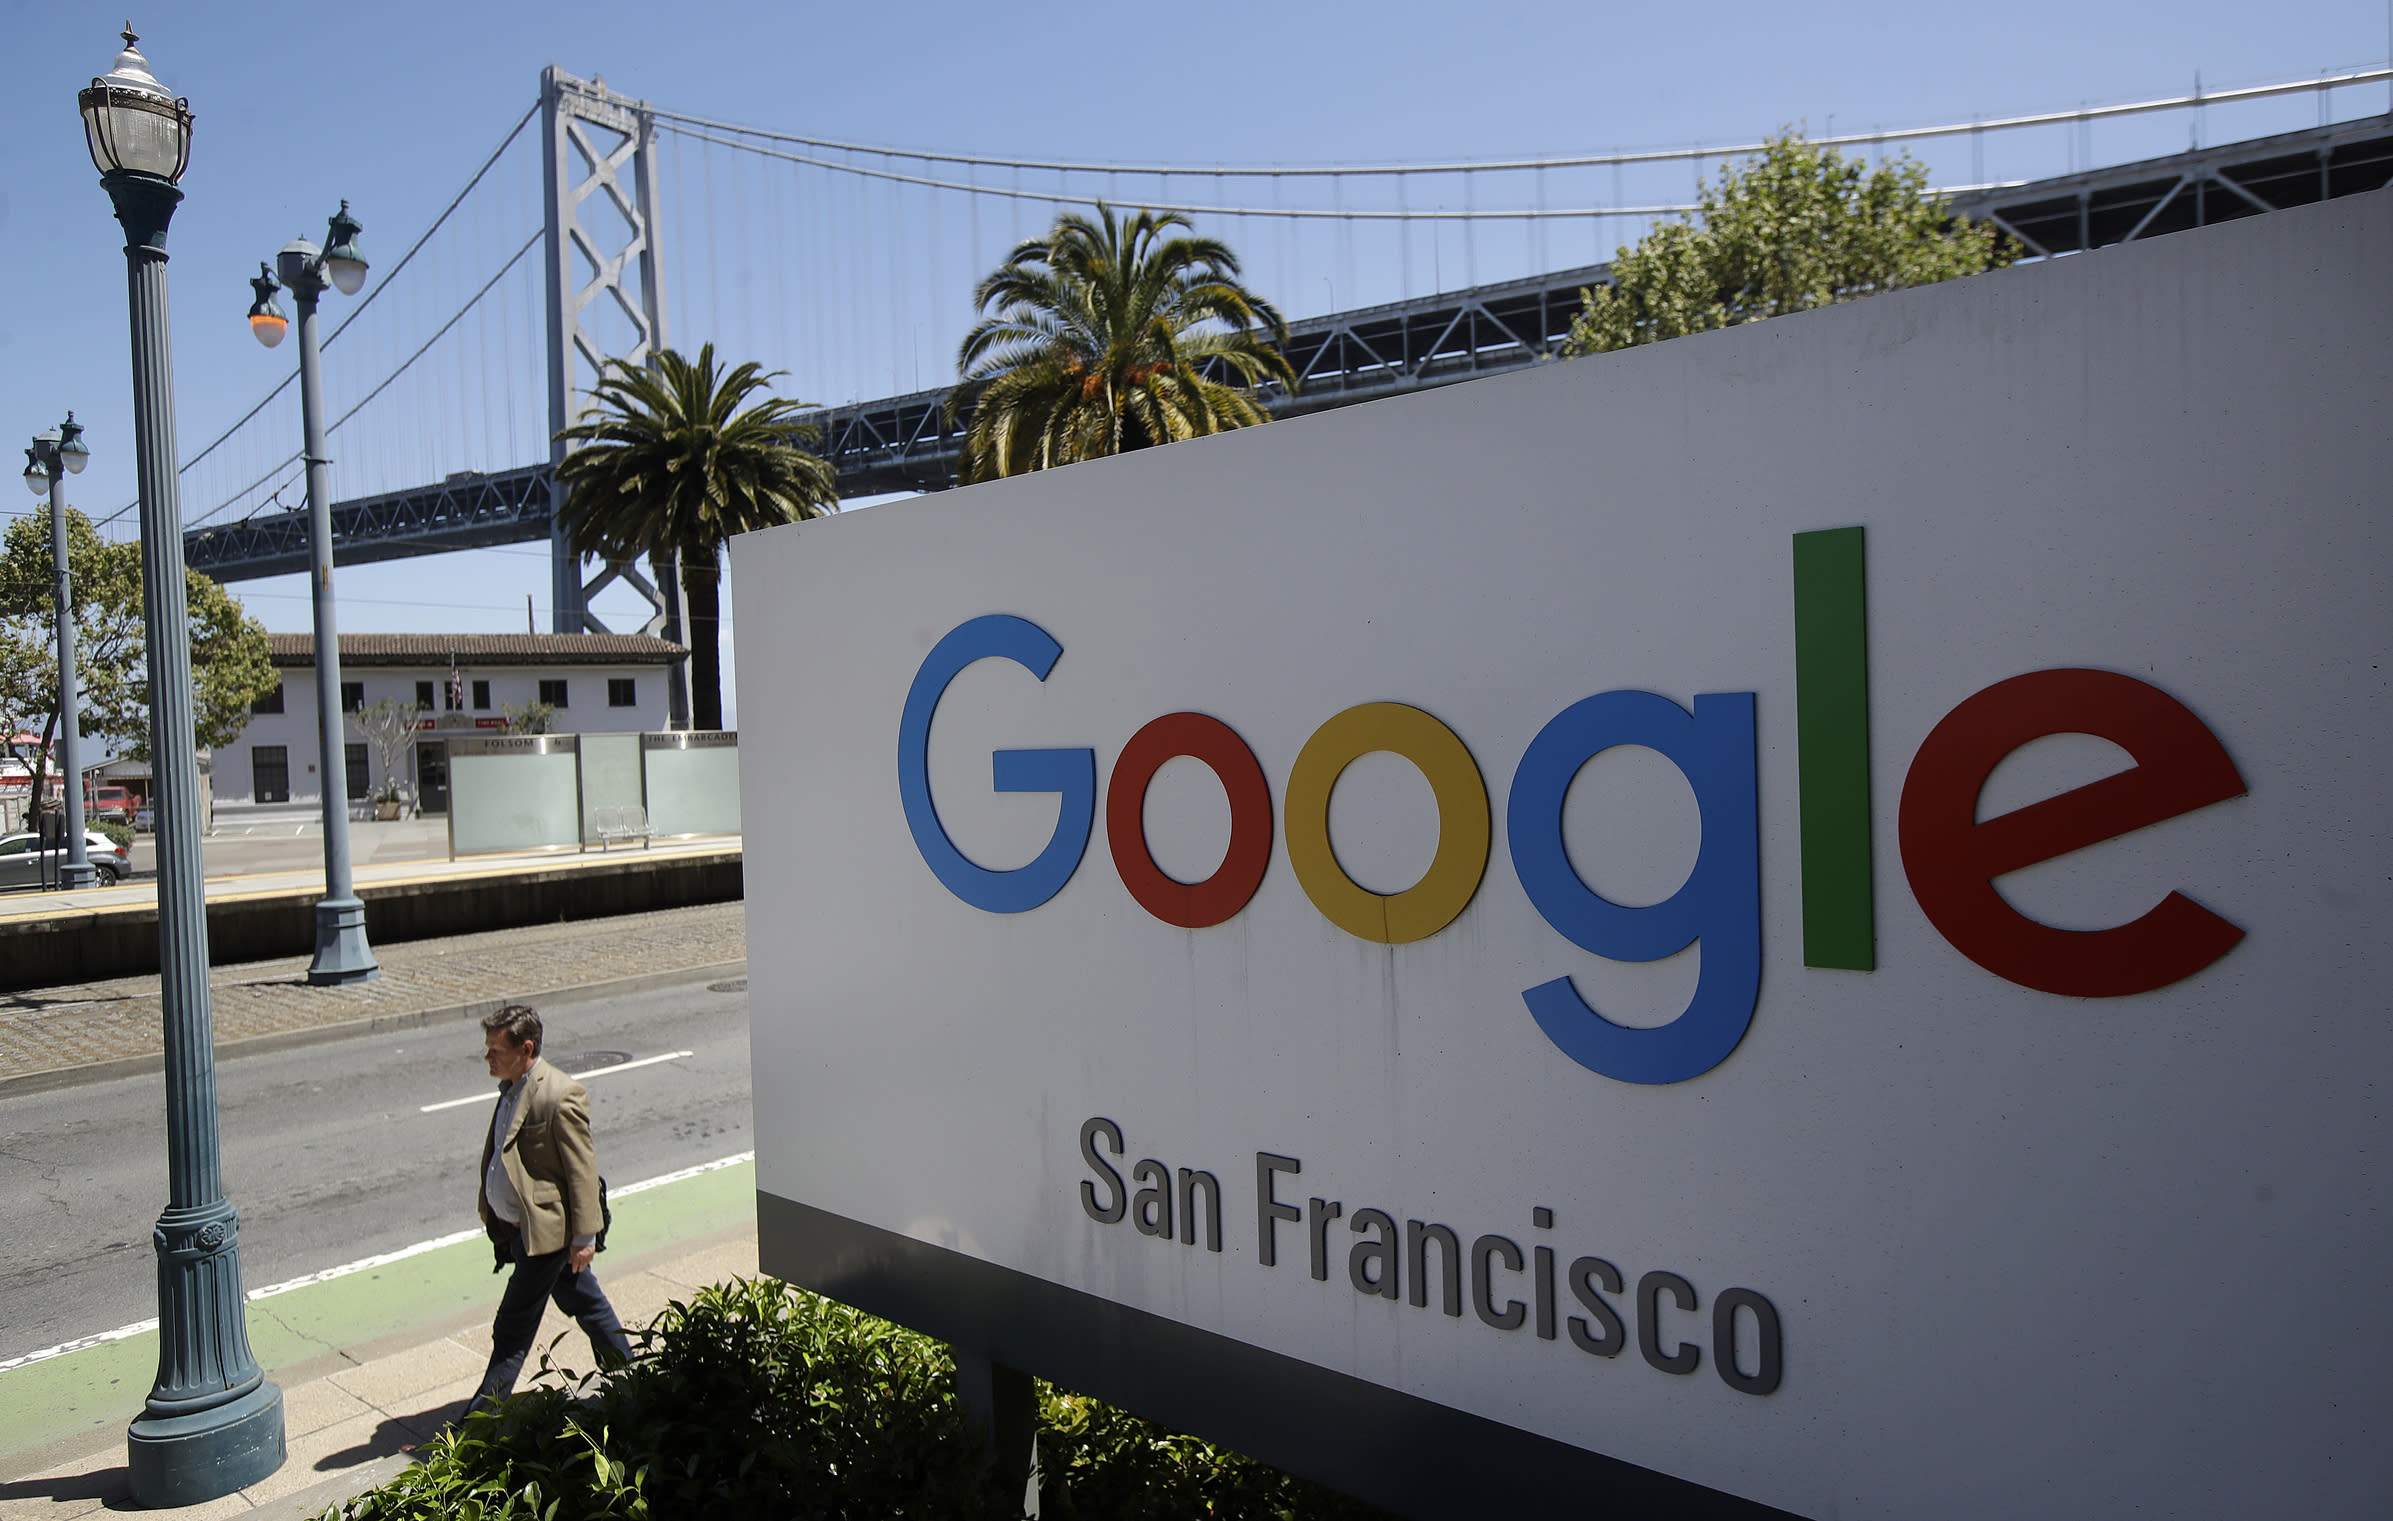 Google hit with 'historic' monopoly abuse investigation